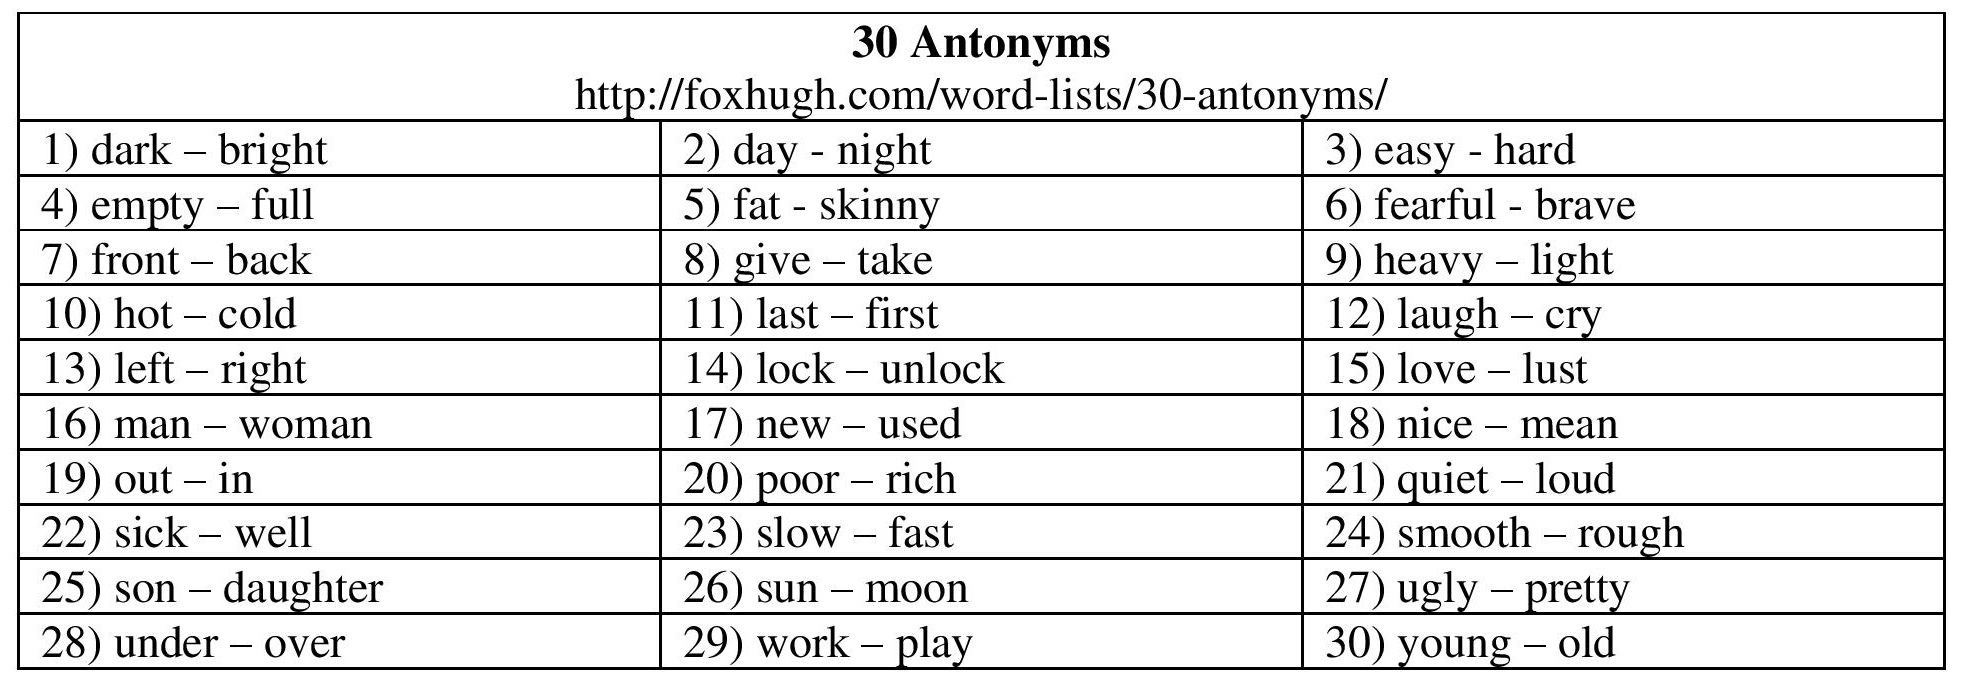 Worksheets 20 Antonyms Words 30 antonyms hugh fox iii antonyms